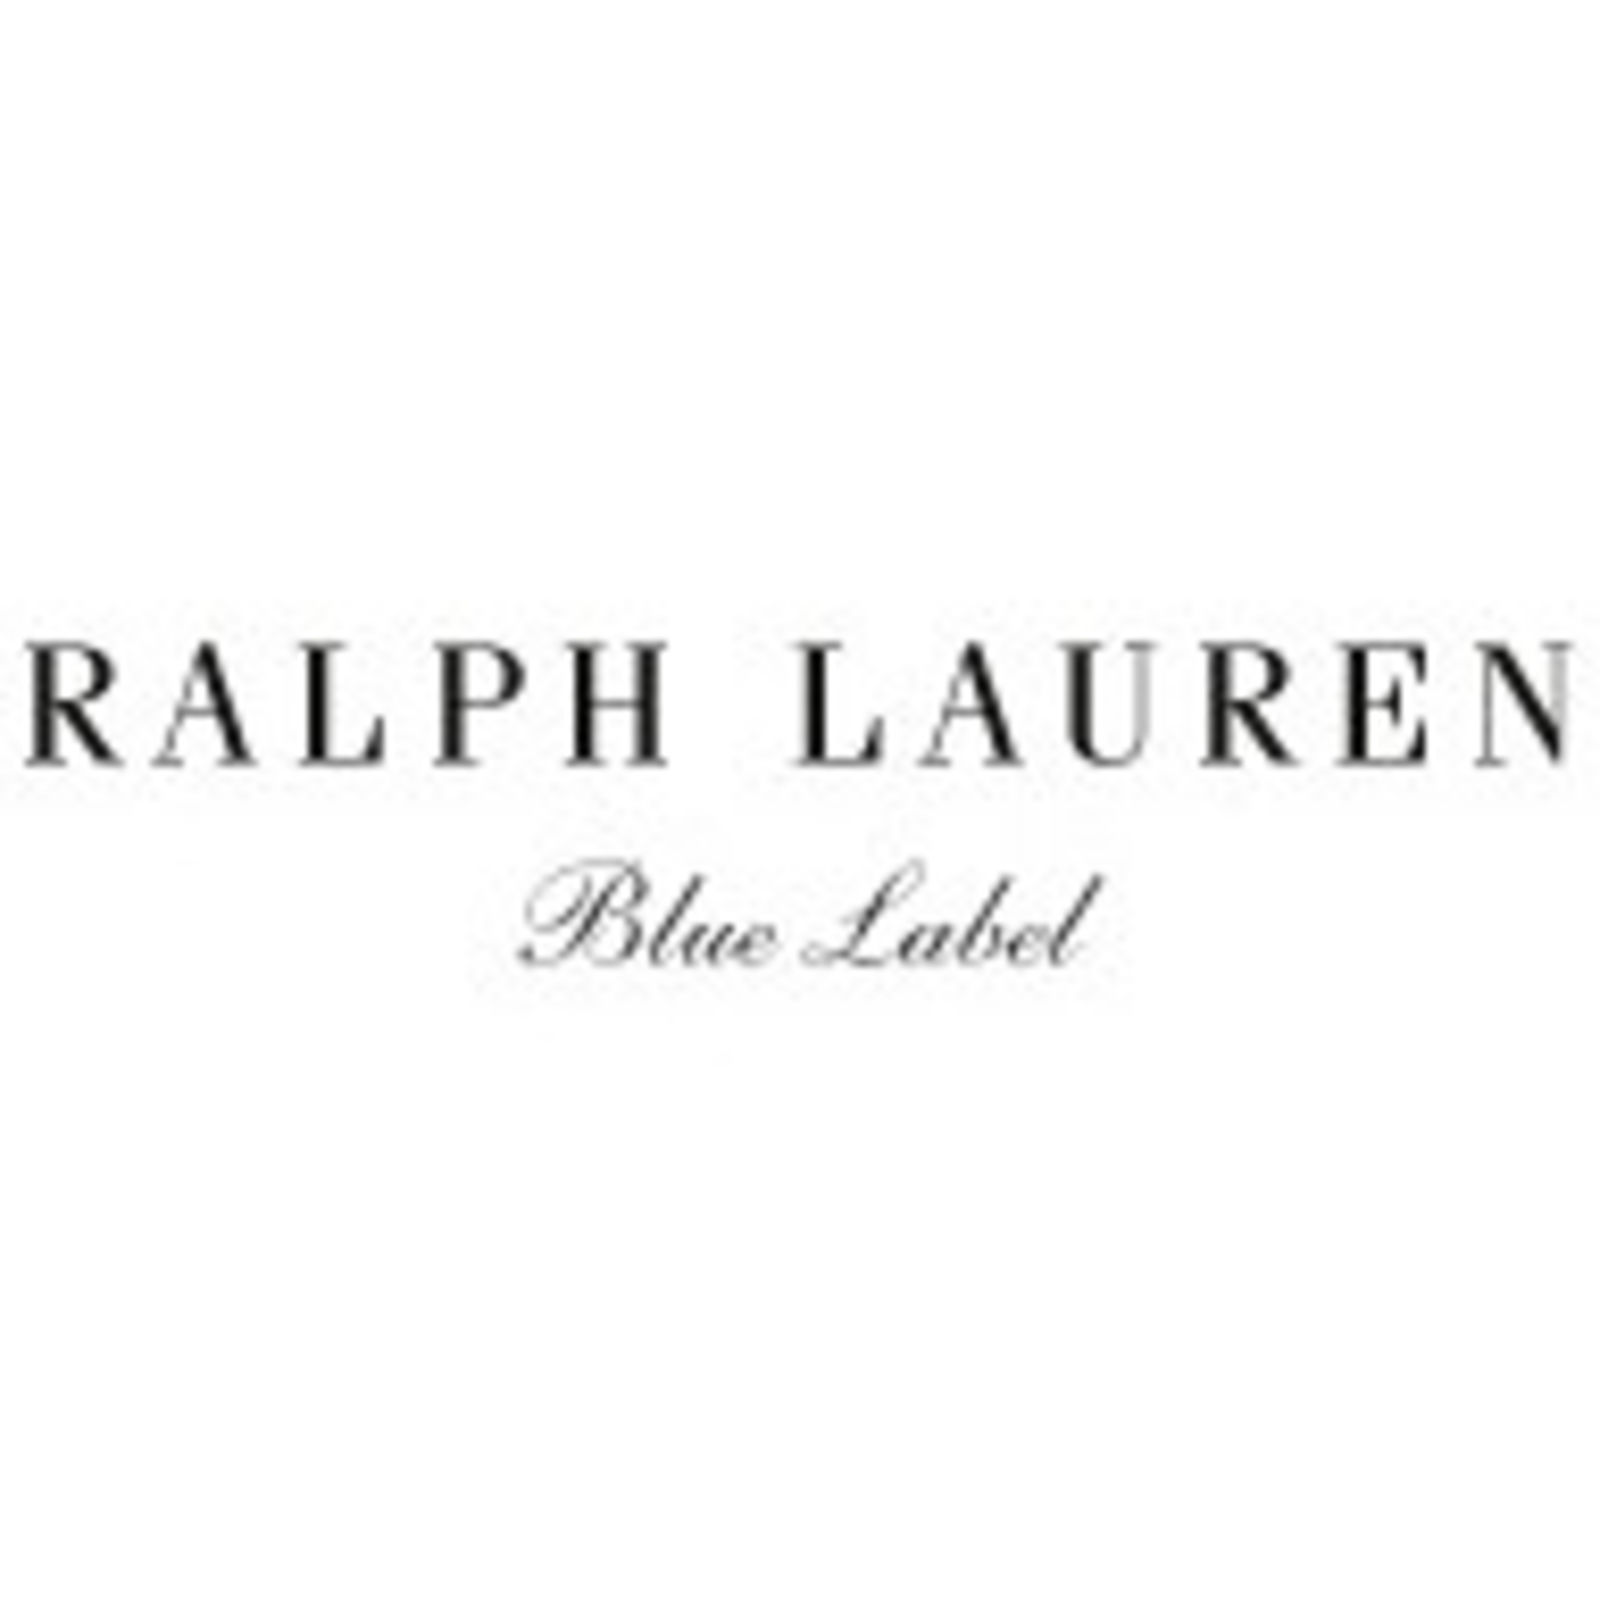 RALPH LAUREN BLUE LABEL (Image 1)